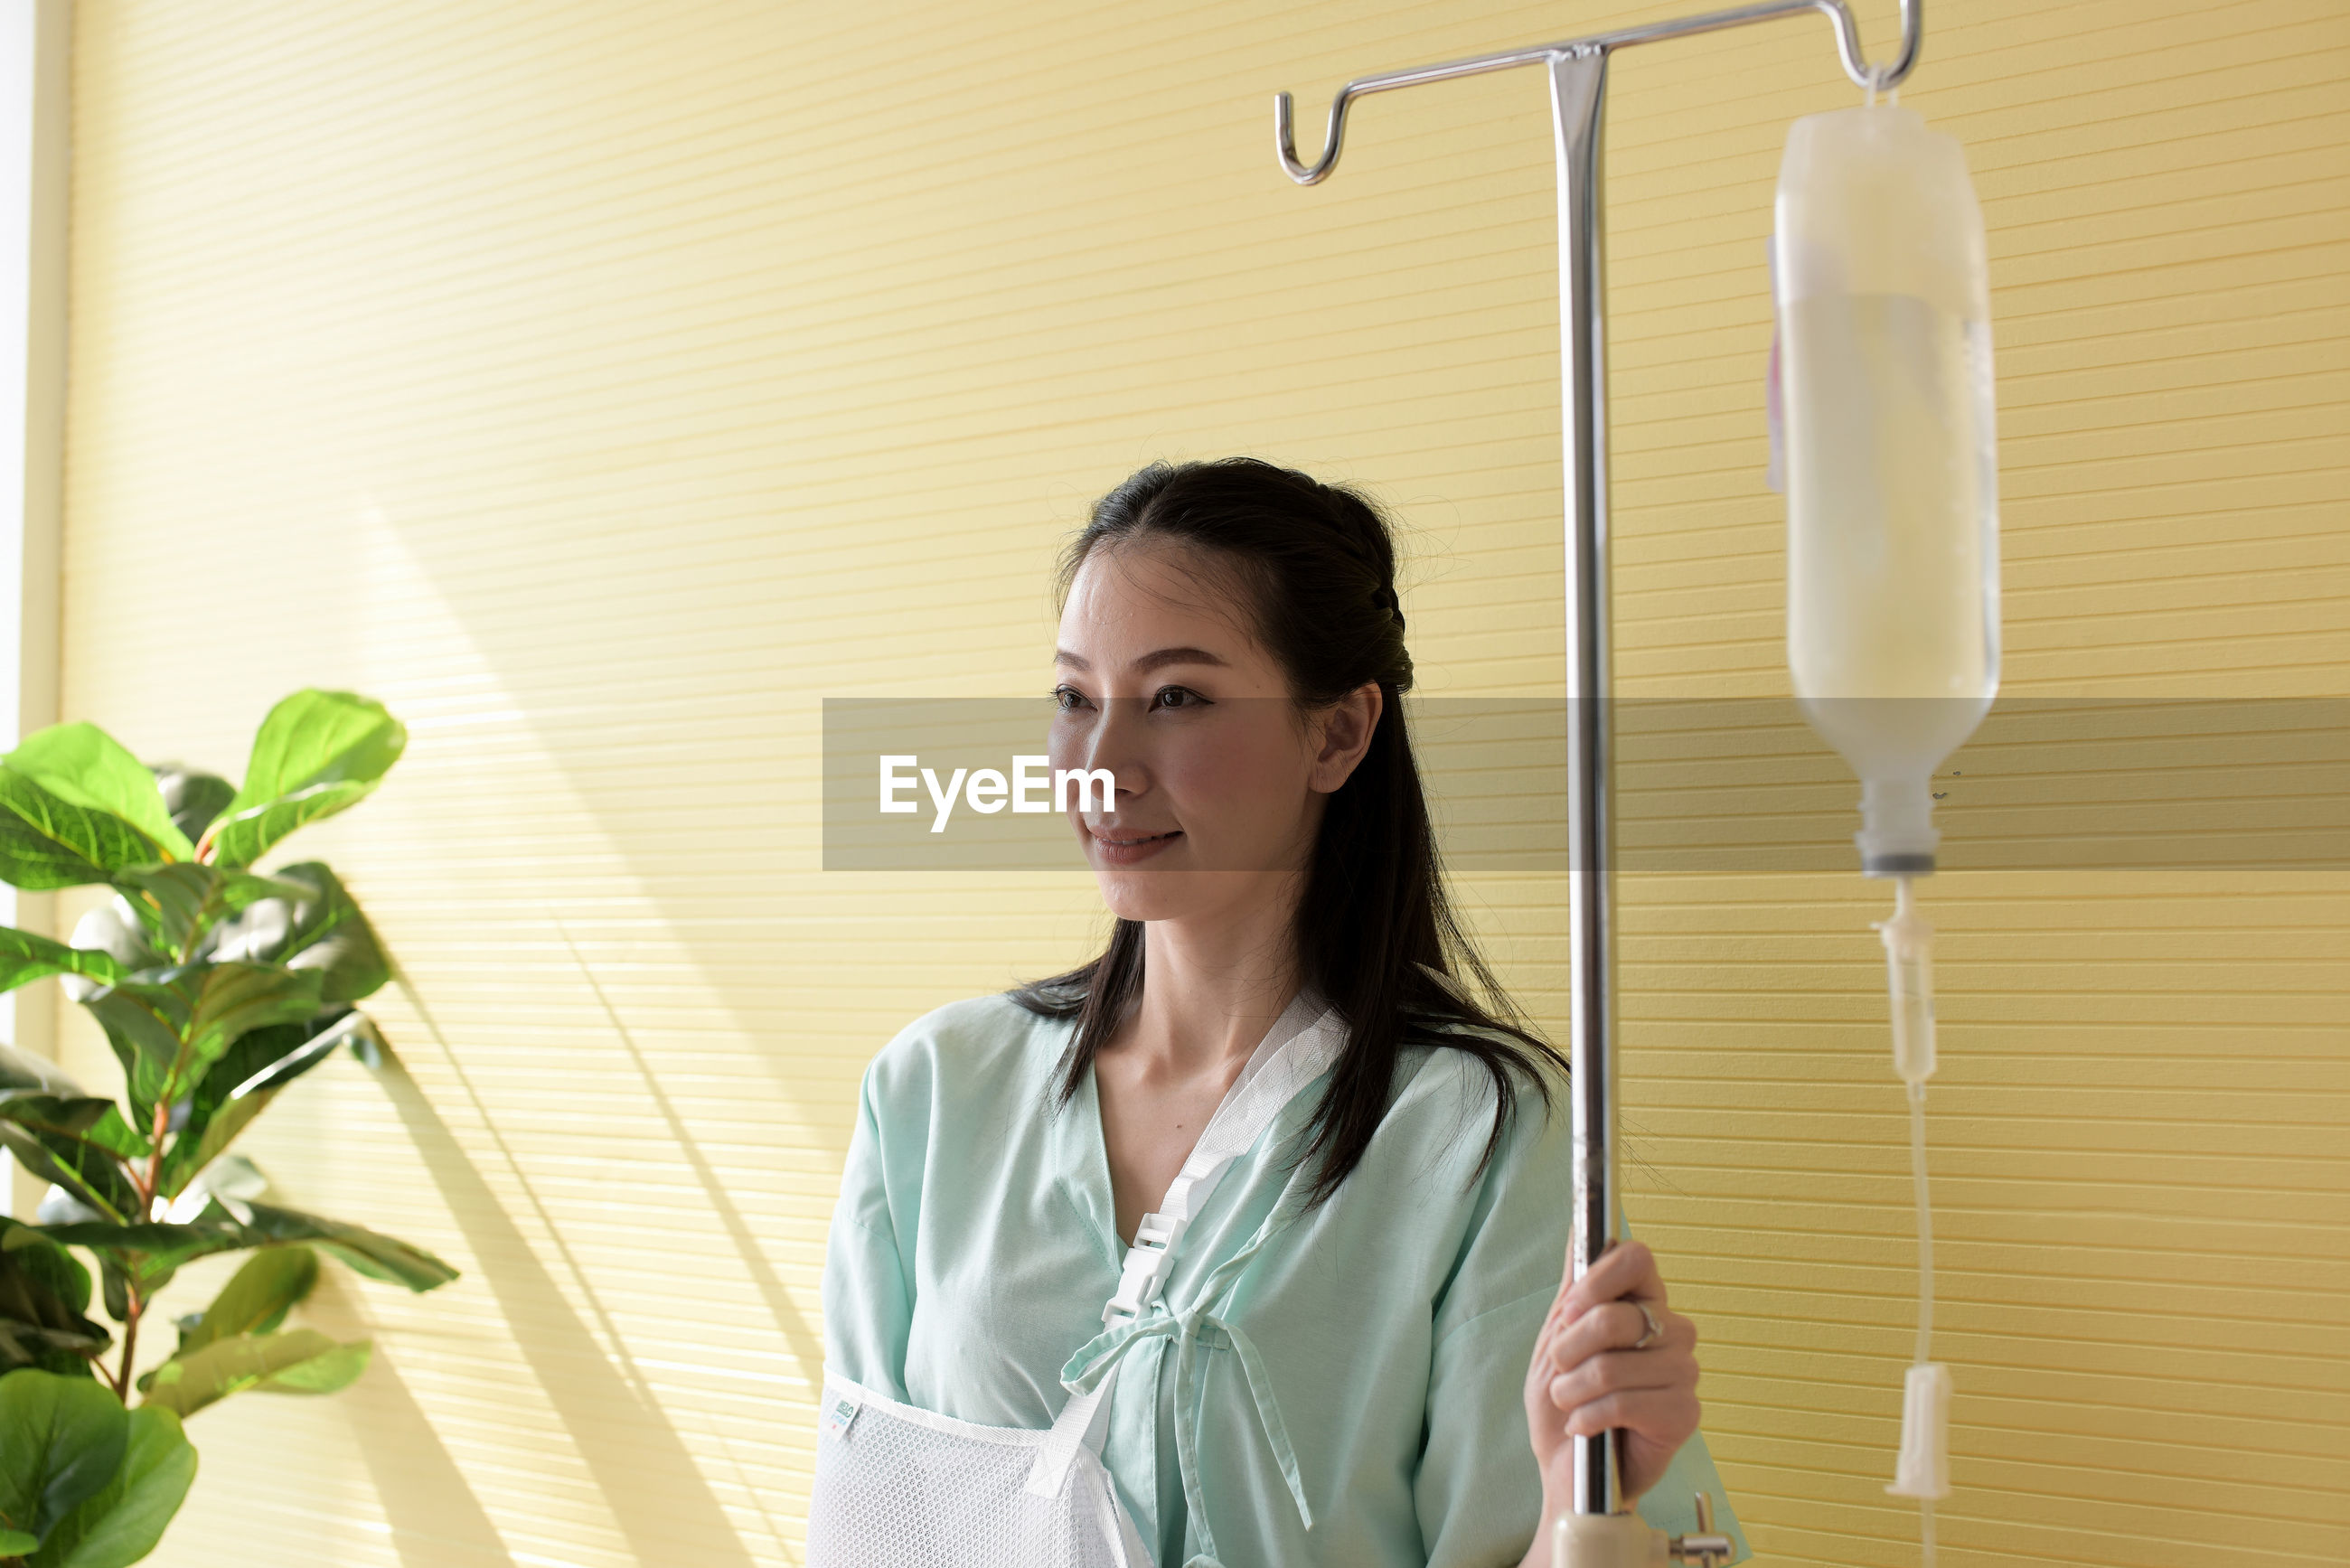 Smiling woman with iv drip standing against wall